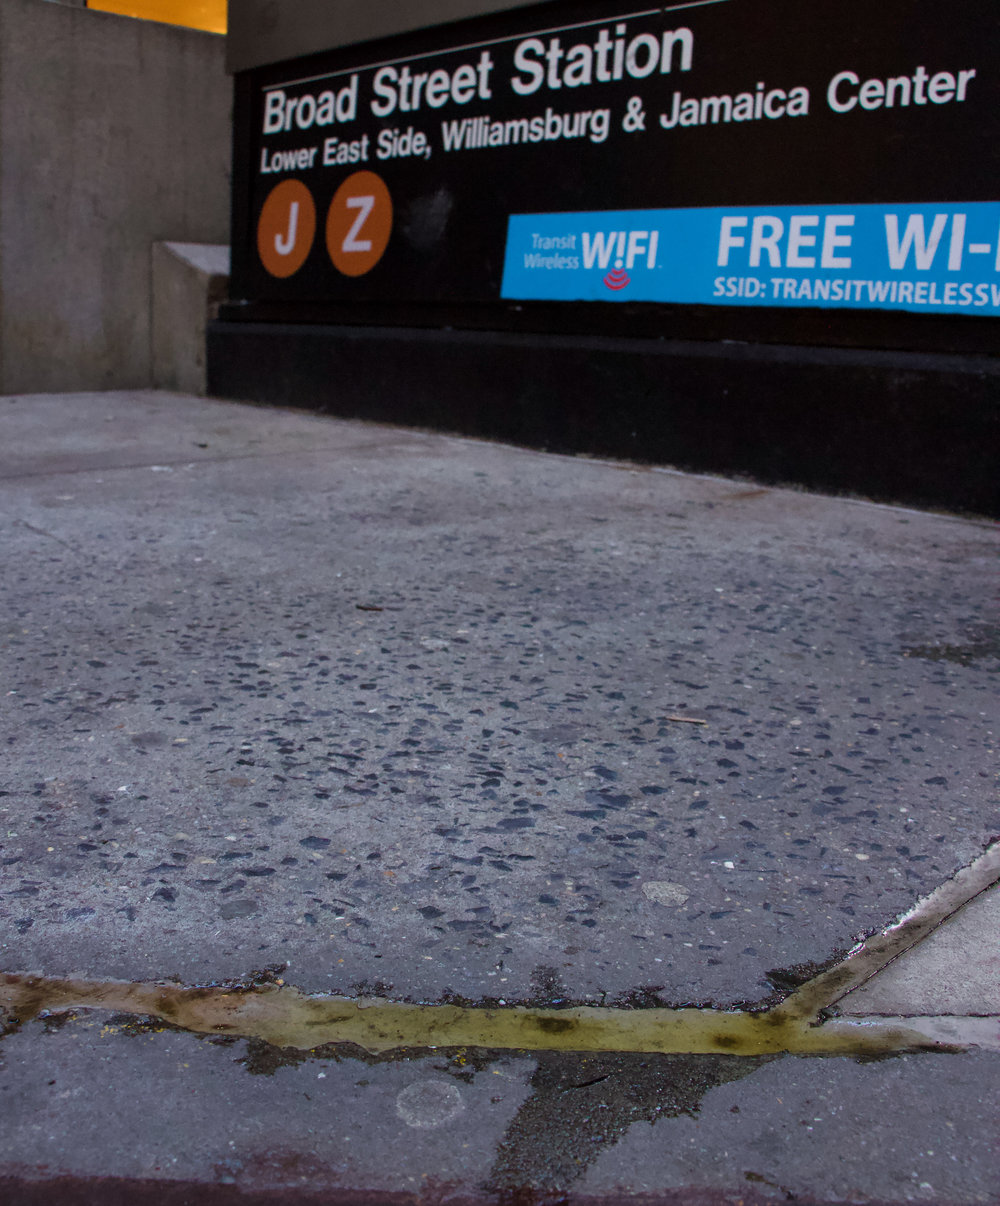 A yellow-liquid substance lies in the crevices outside the J/Z subway station at Broad Street. || Photo credit to Gabriela Kressley.